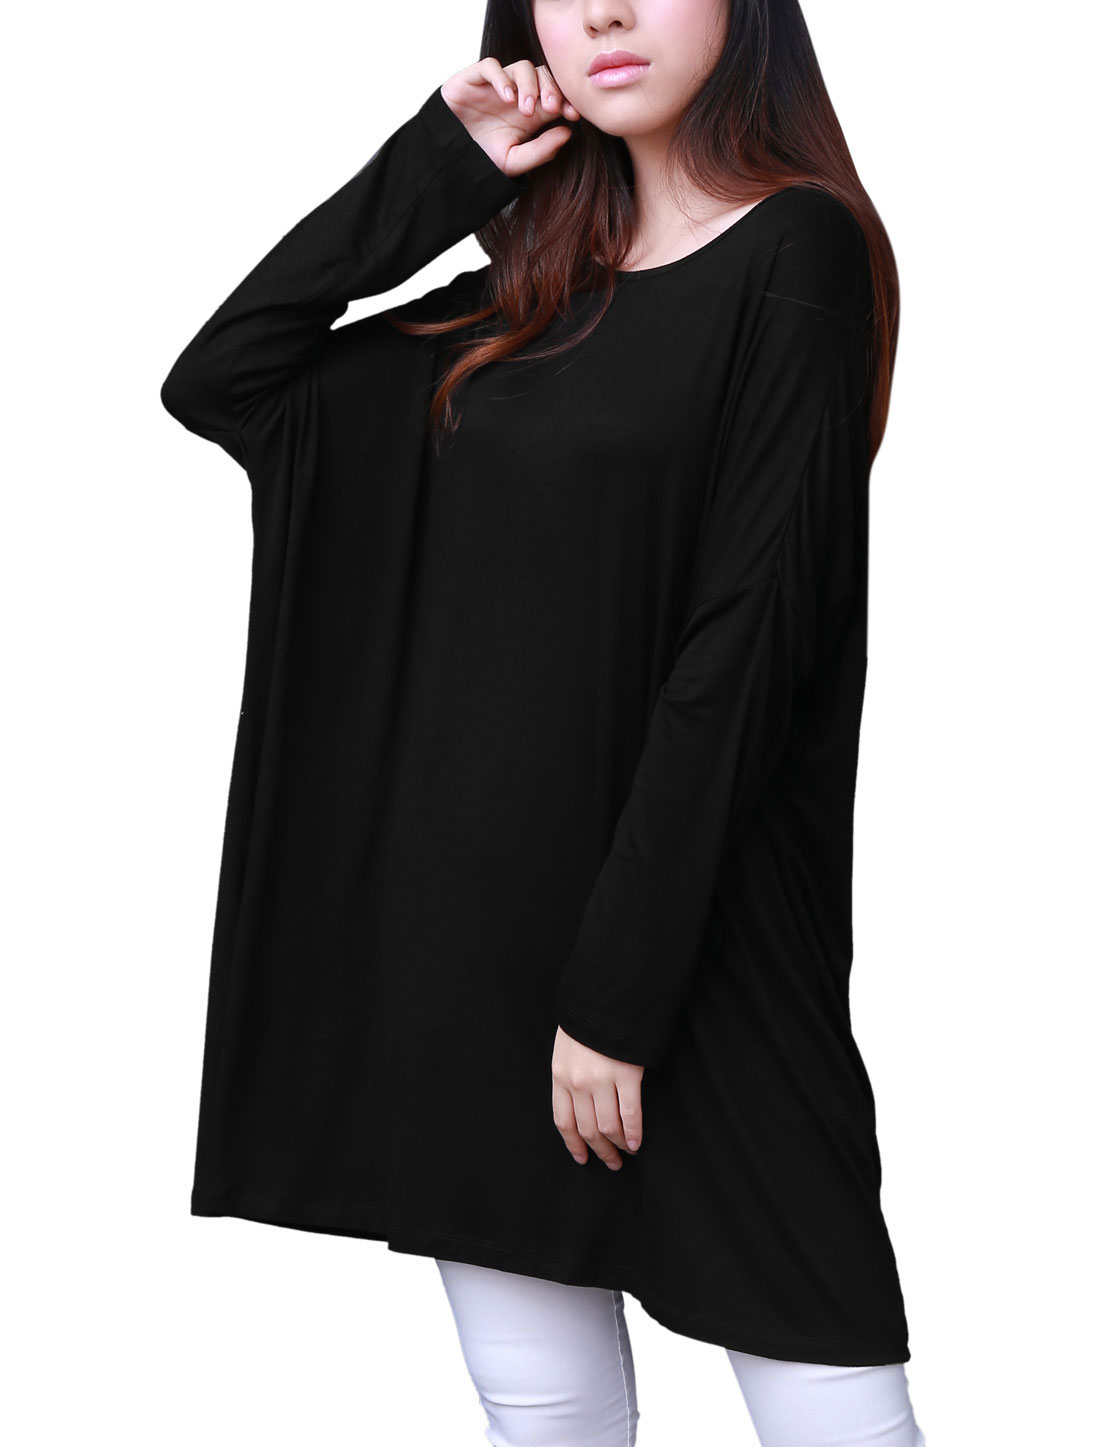 Lady Korea Style 3/4 Batwing Sleeve Solid Color Black Loose Shirt S